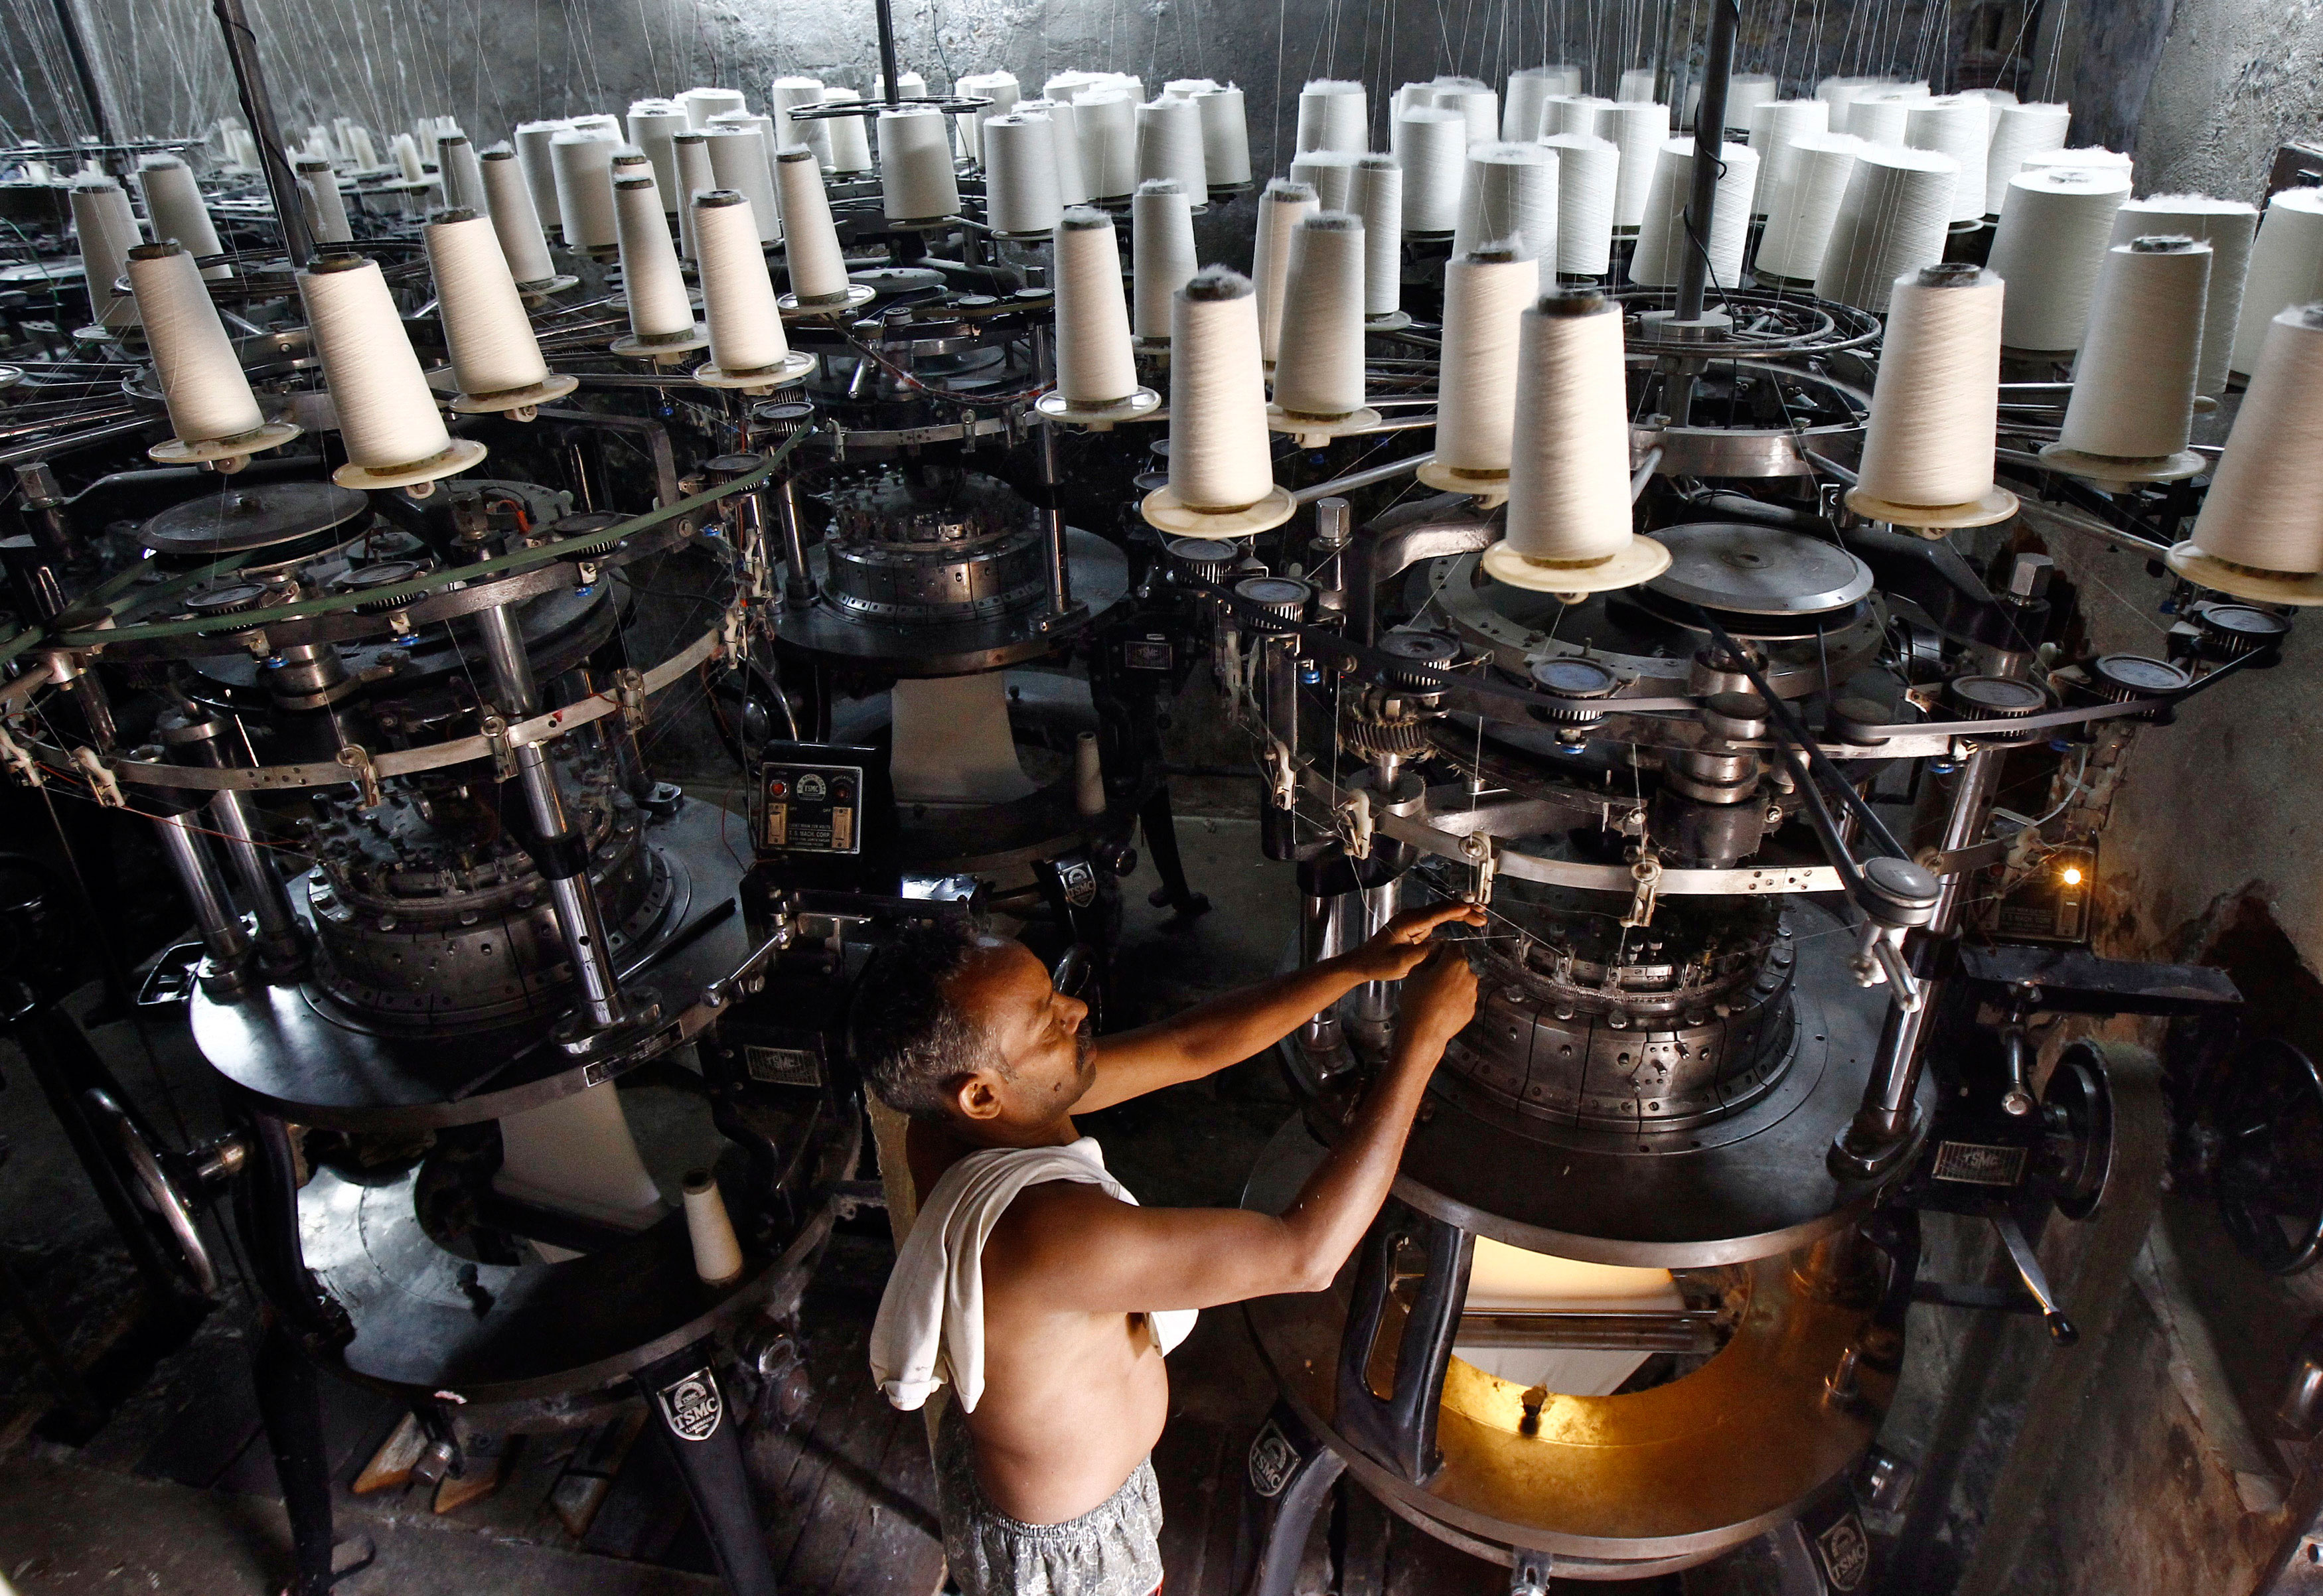 Industrial output contracts by 4.2% in October